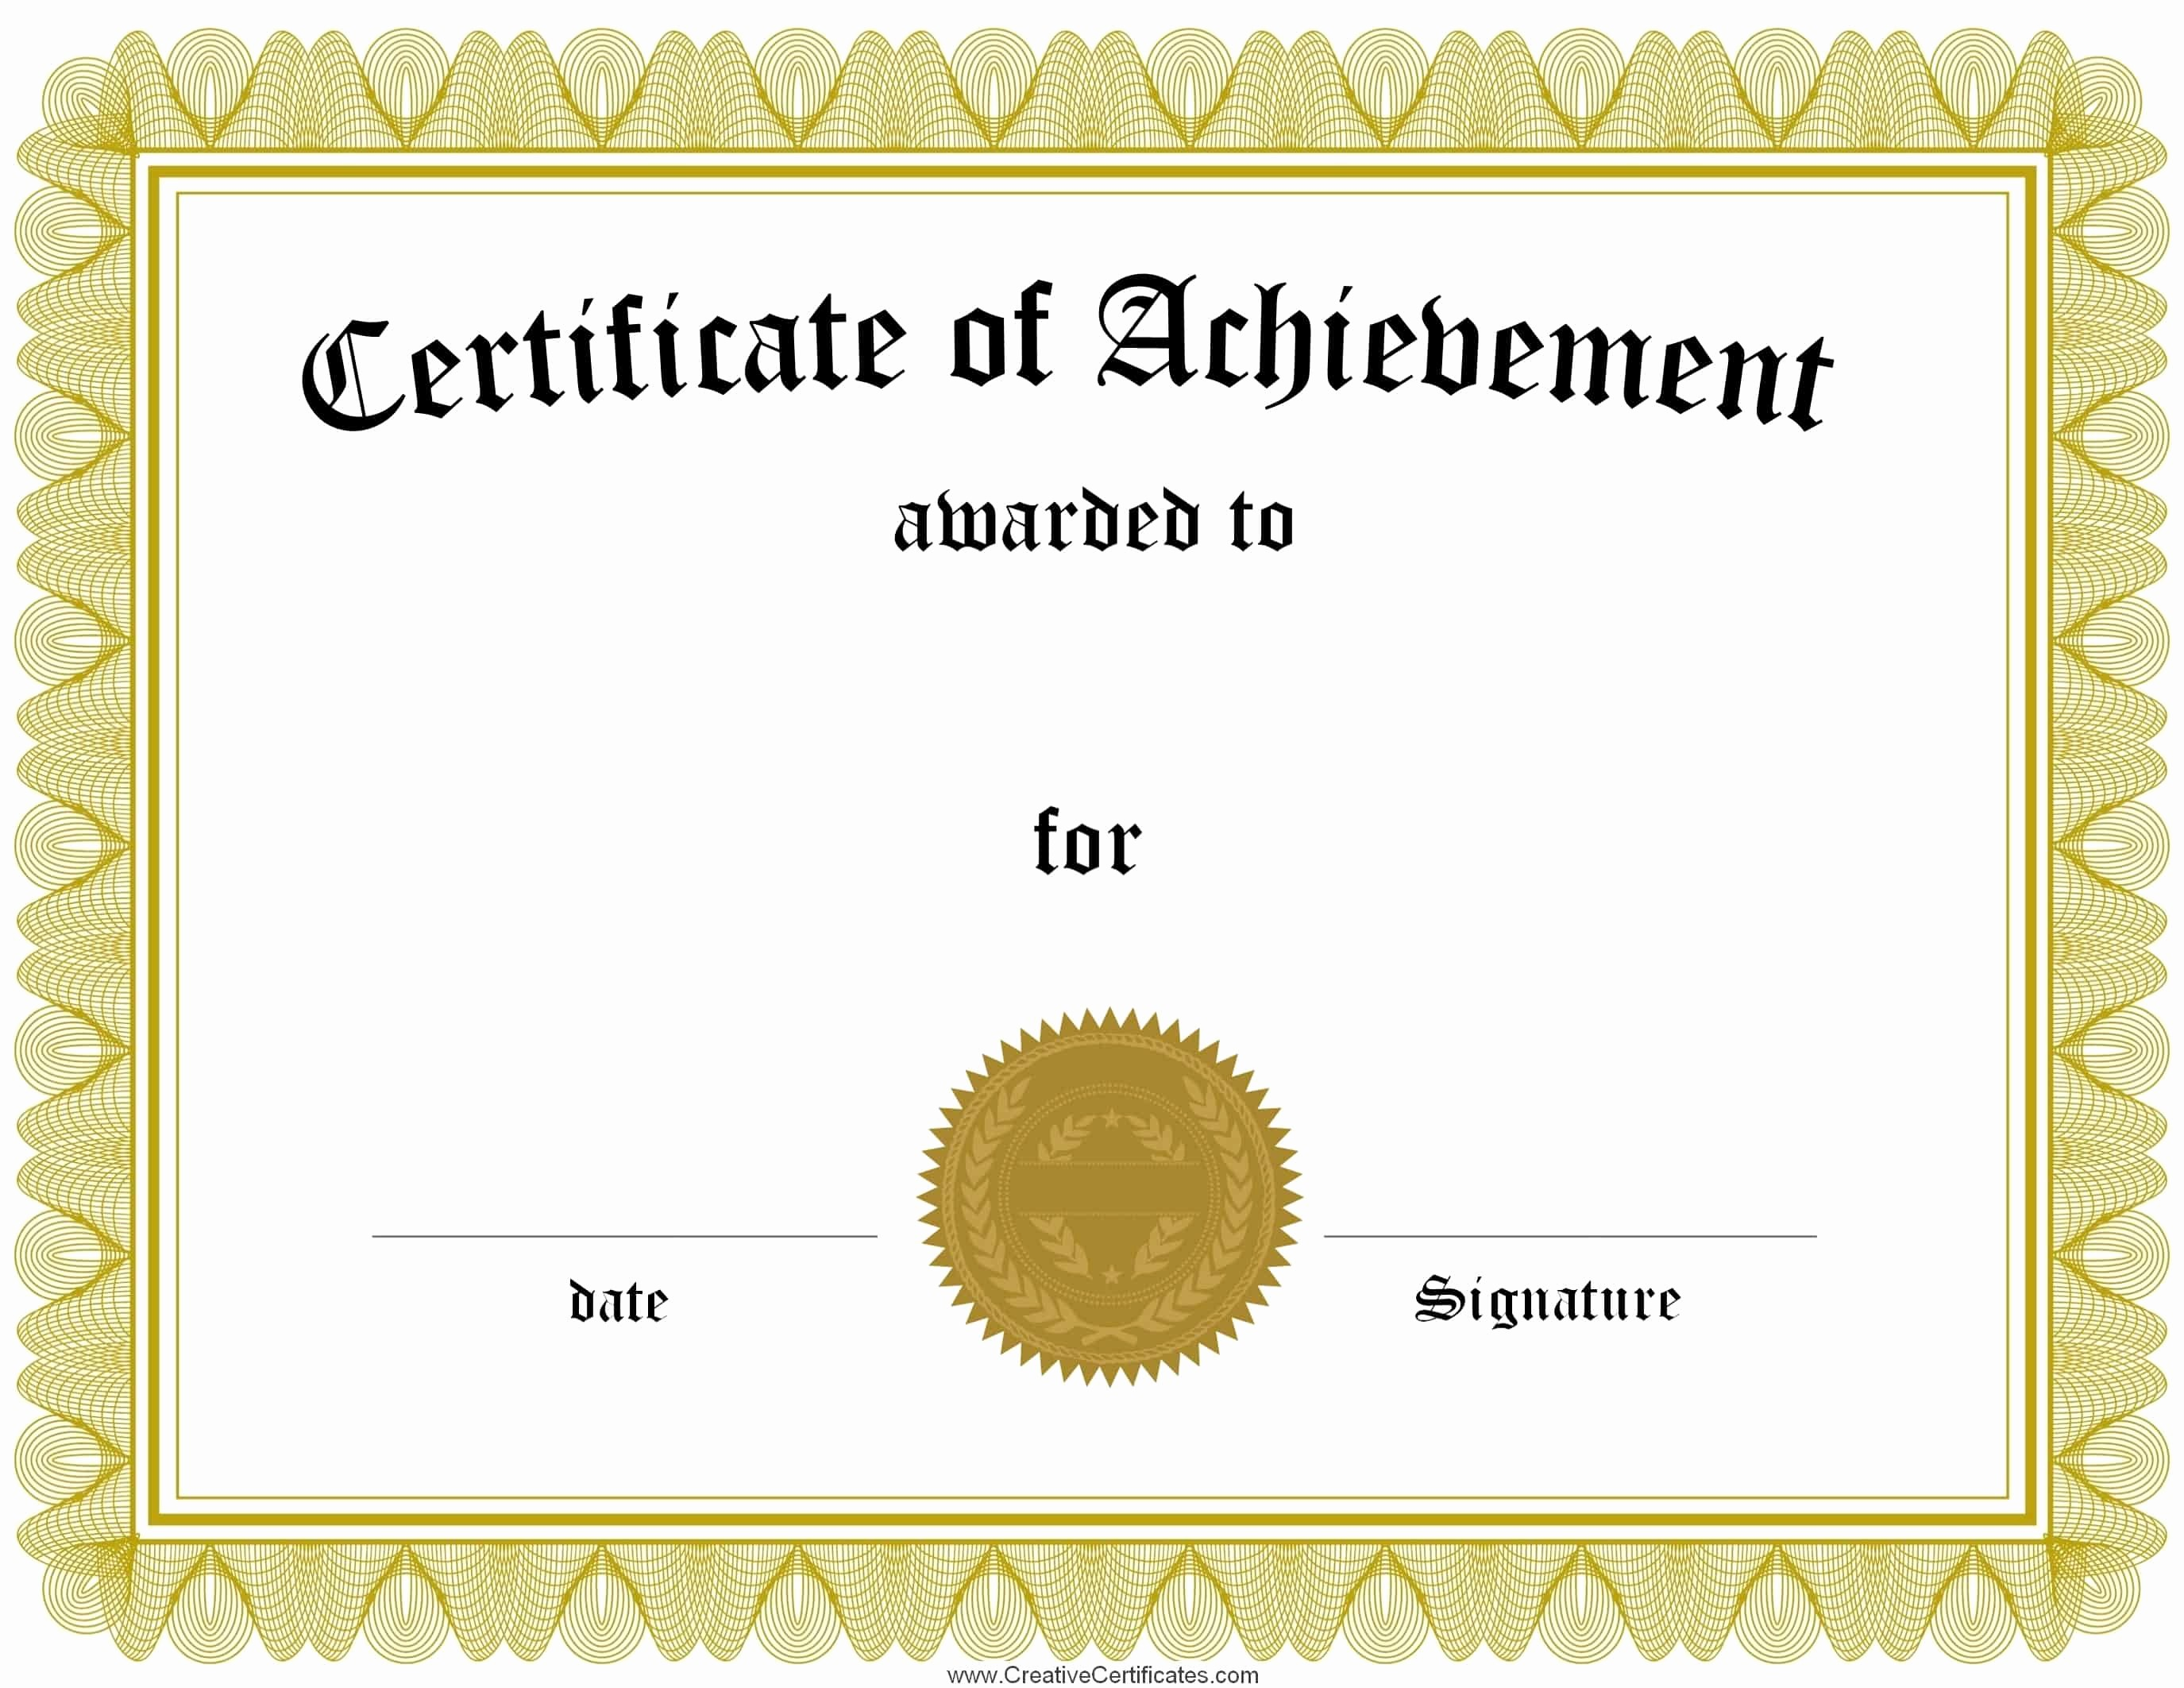 Certificate Of Accomplishment Template Free Awesome Free Customizable Certificate Of Achievement